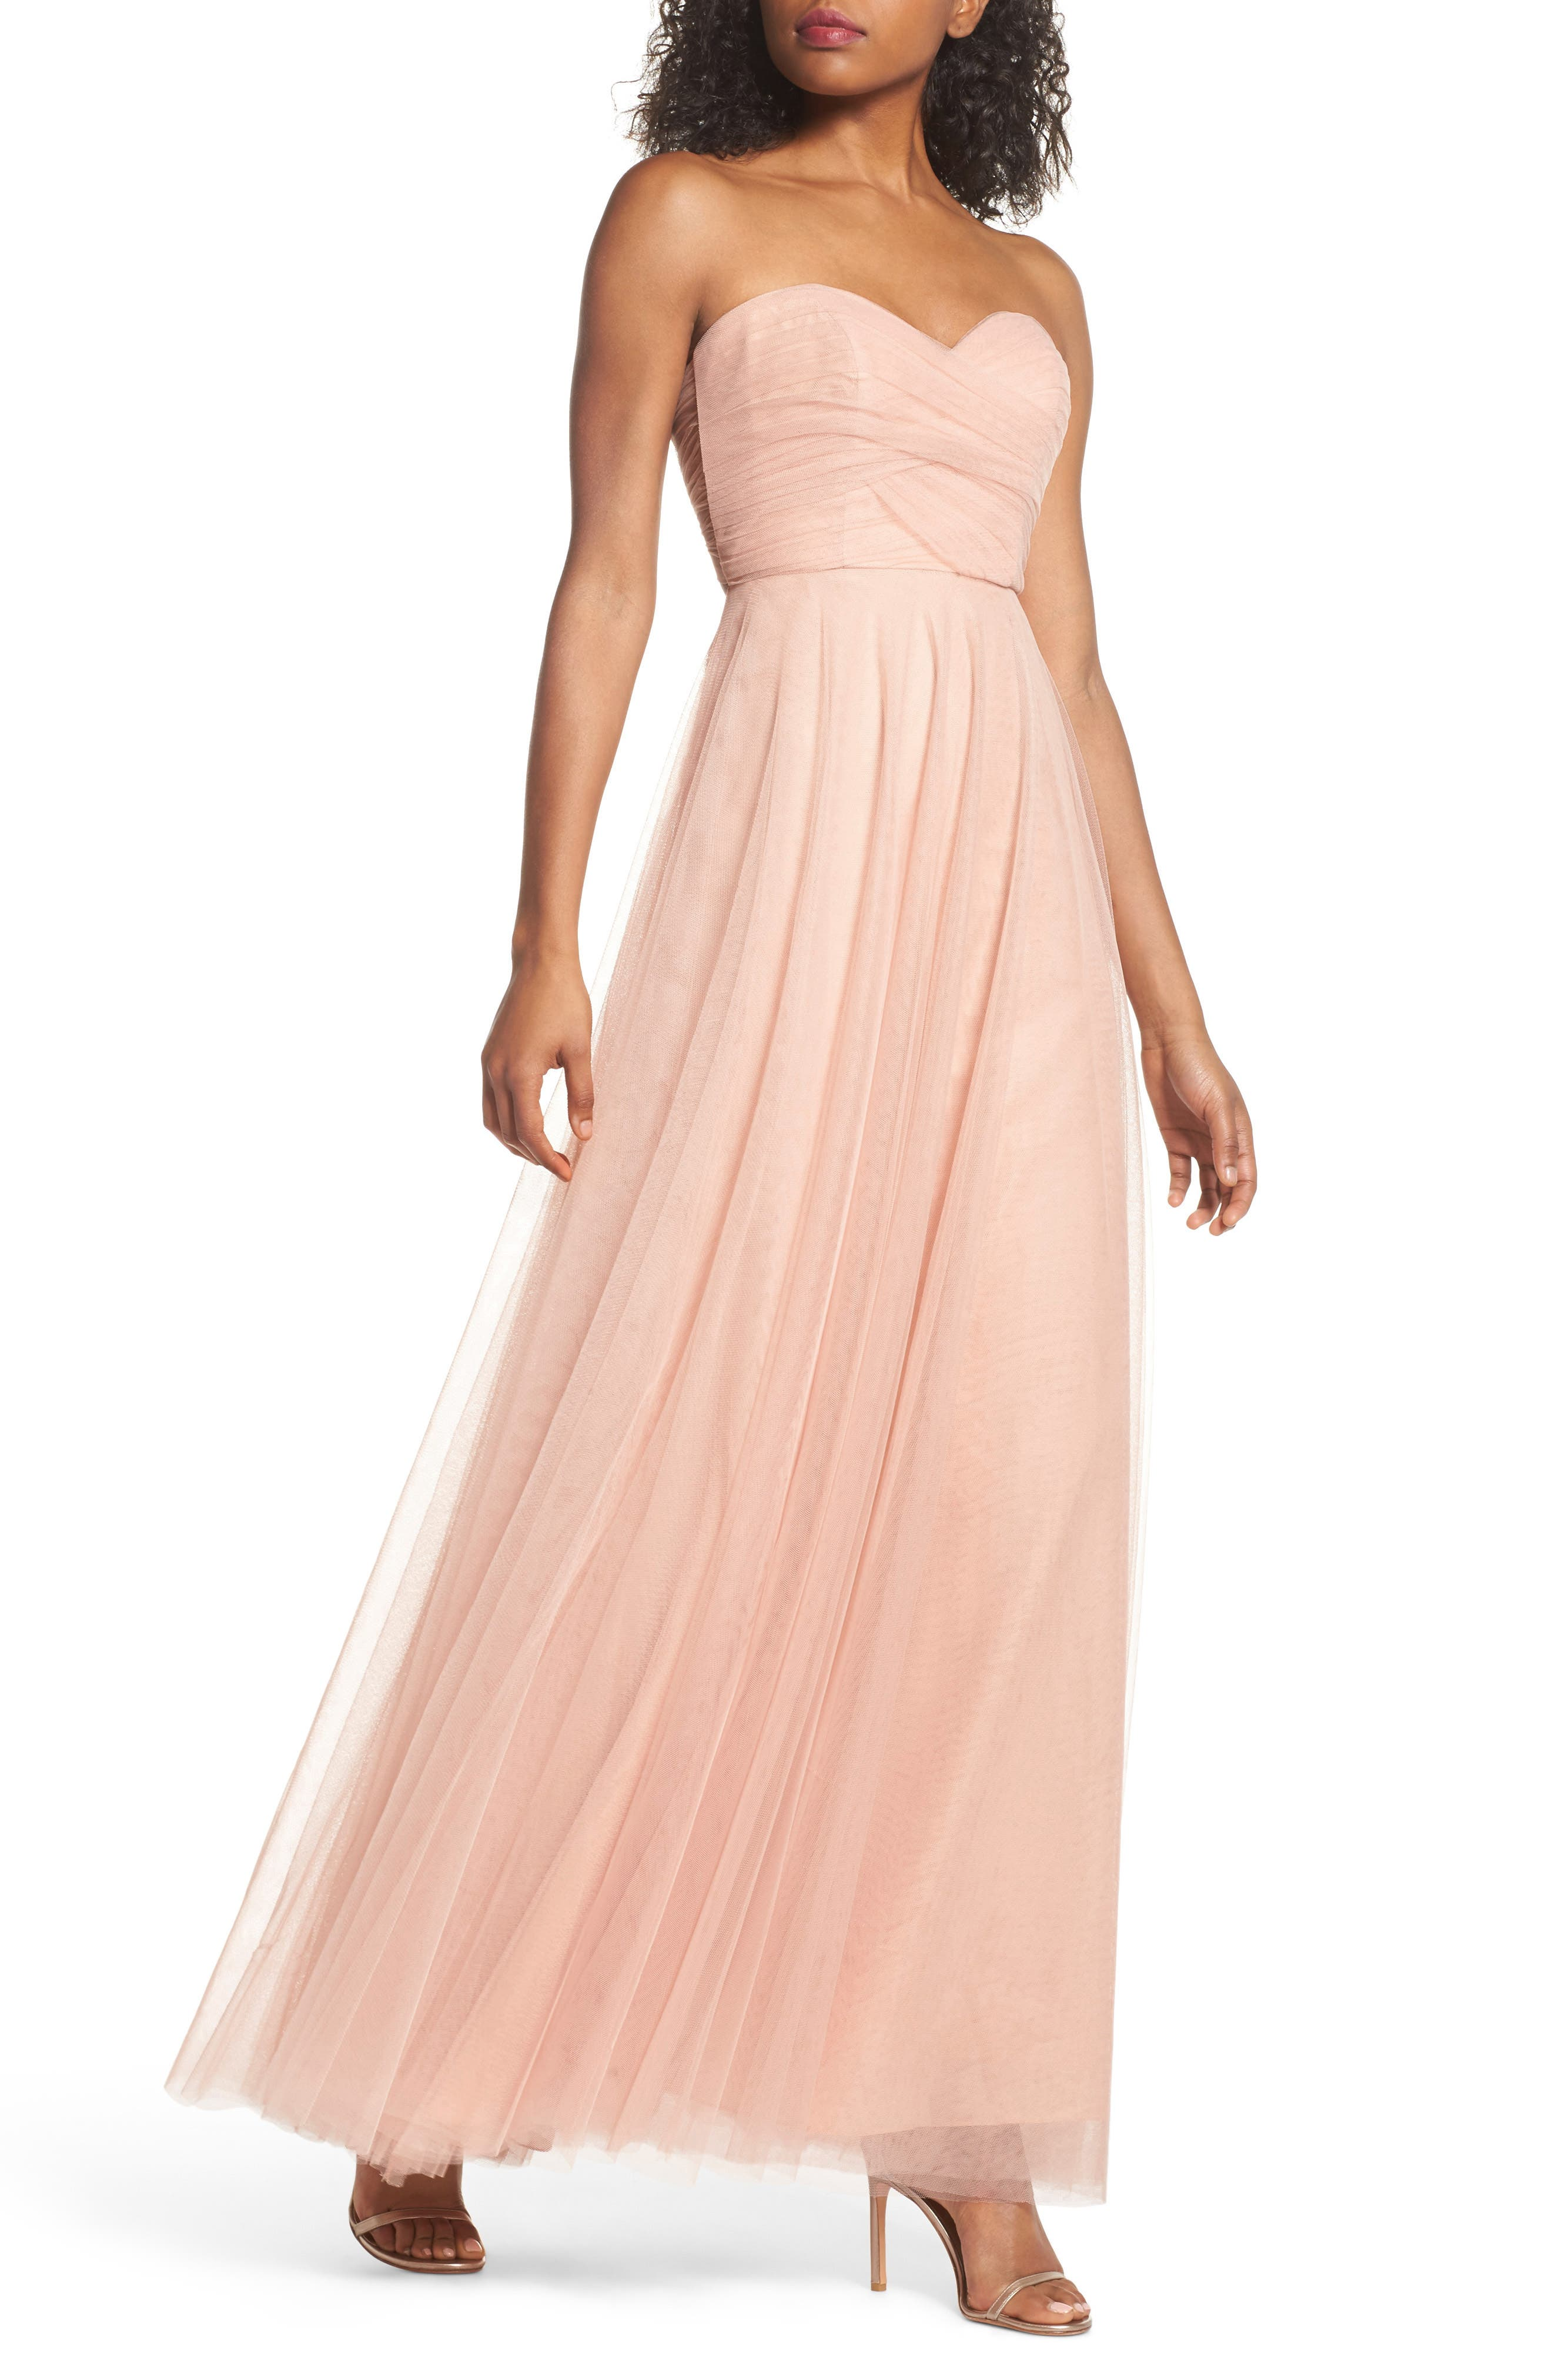 Main Image - Jenny Yoo Julia Convertible Soft Tulle Gown